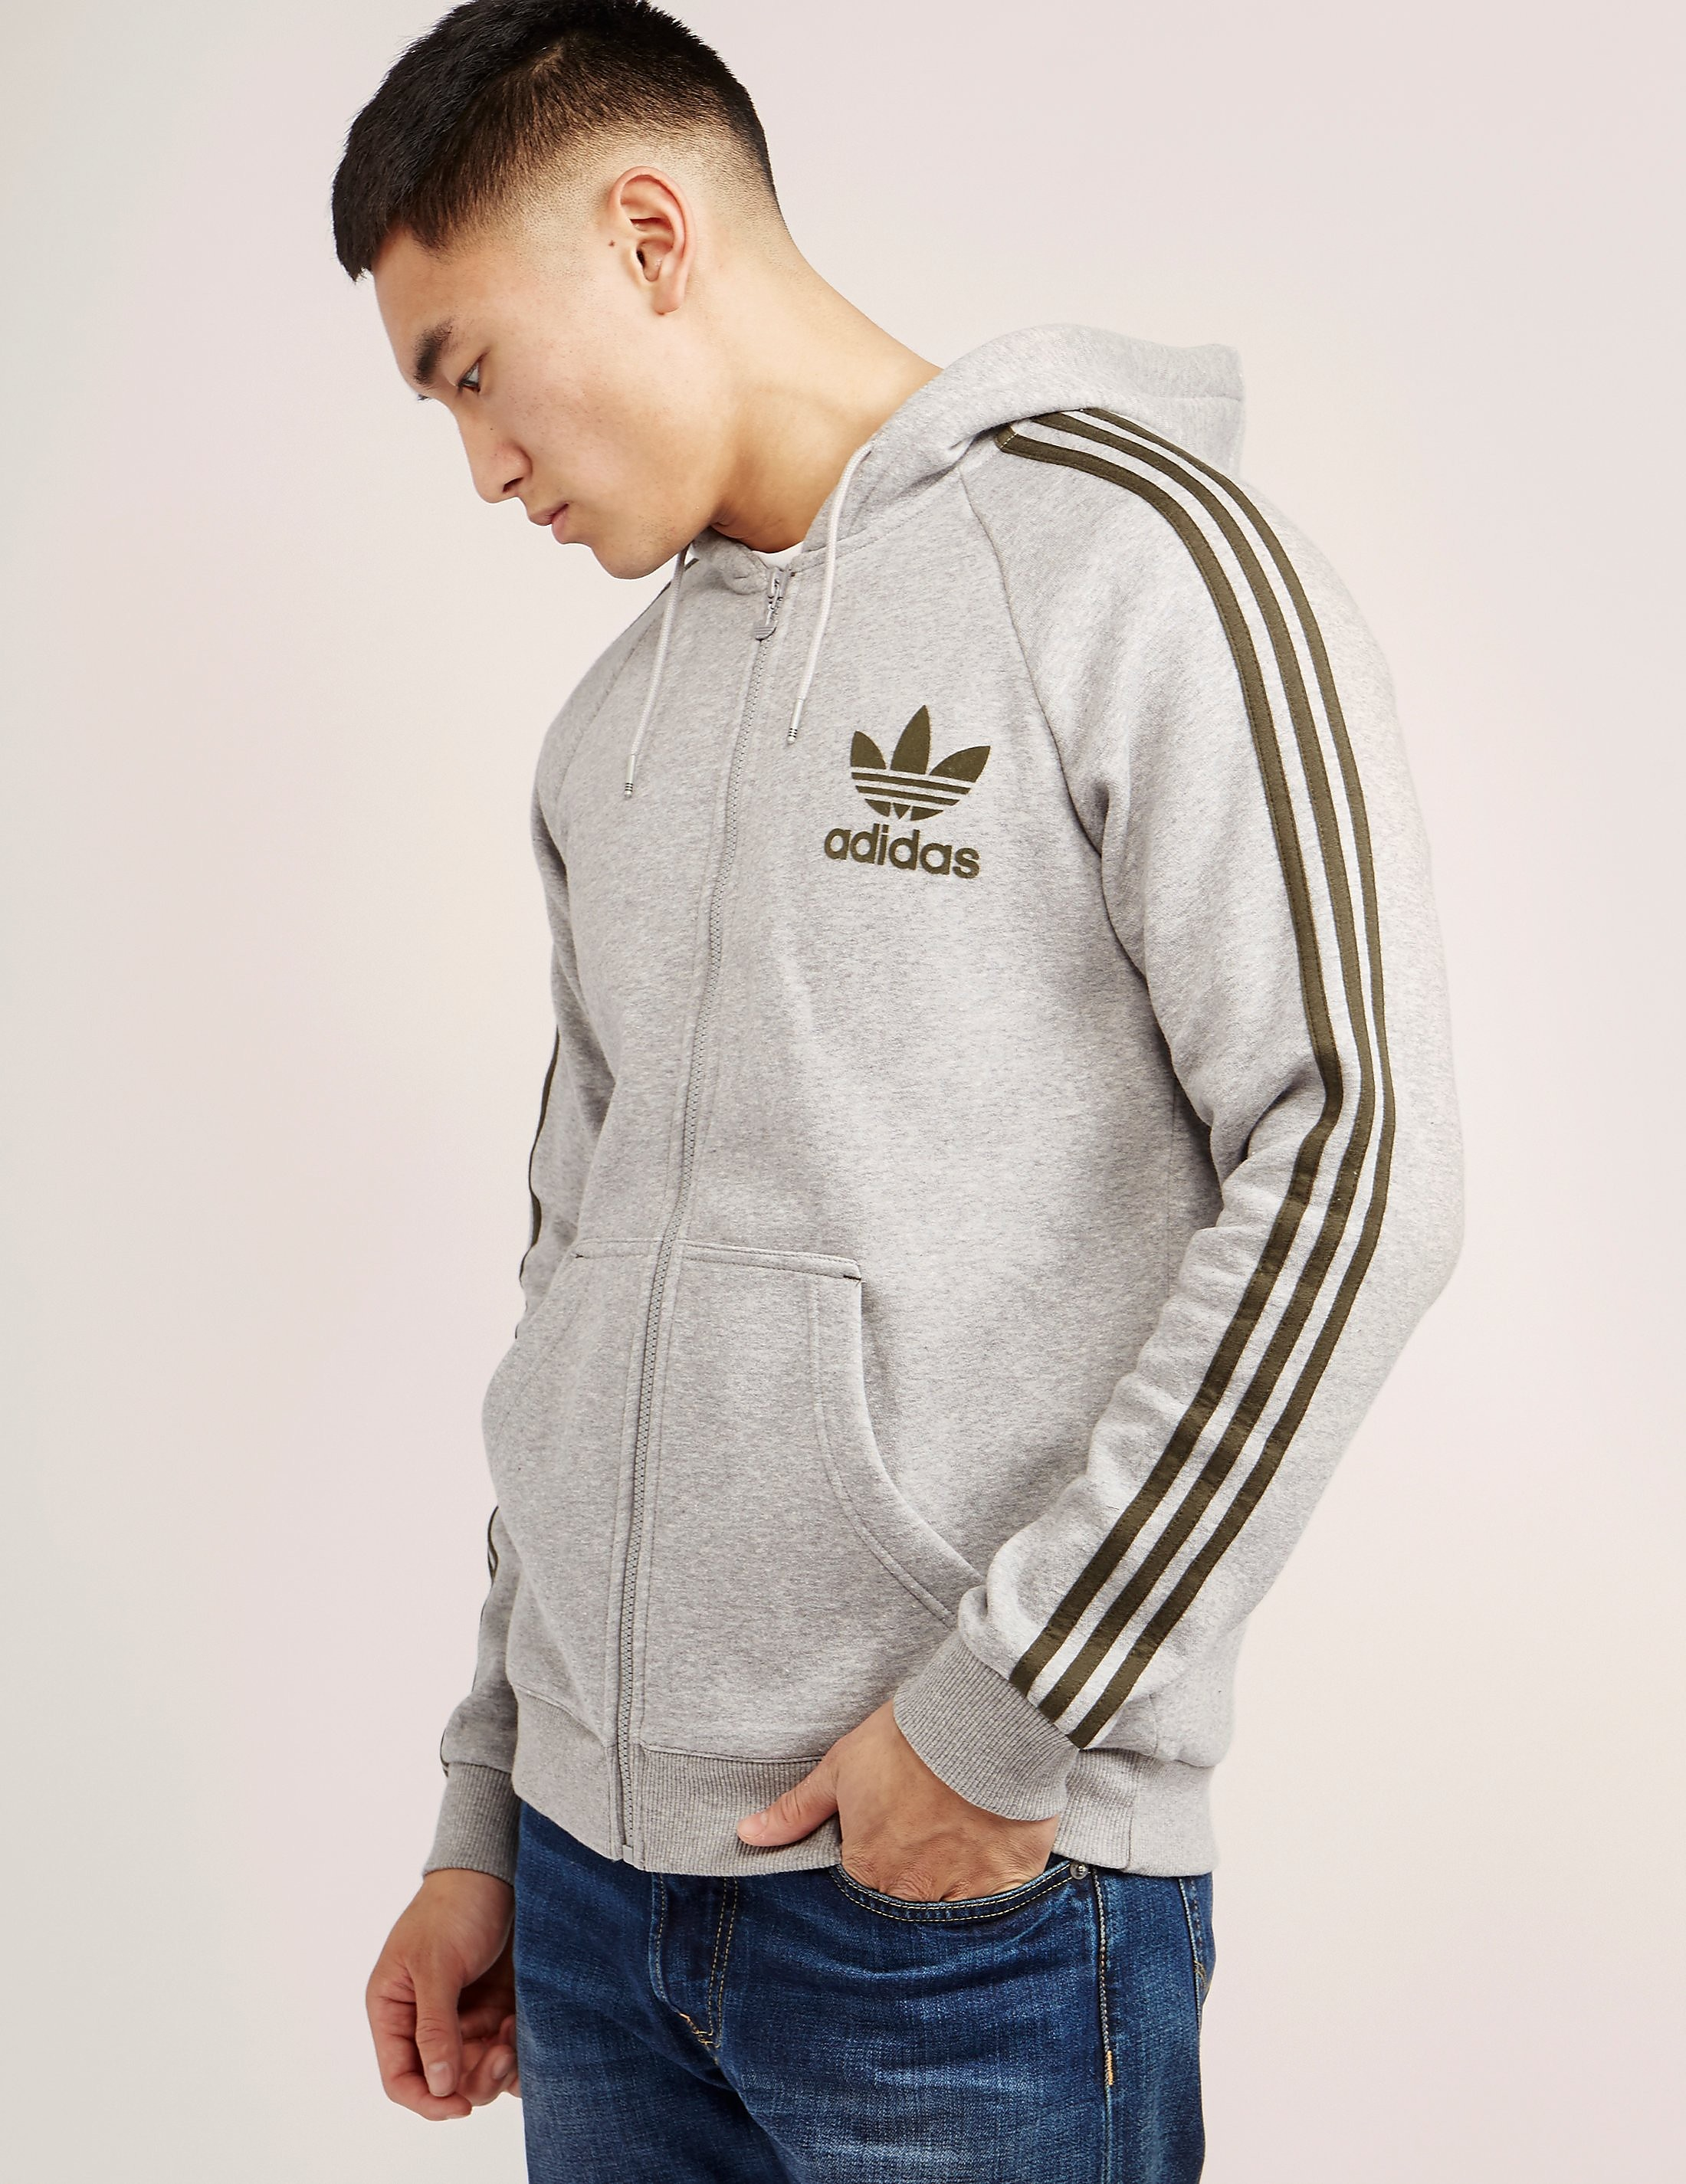 adidas Originals California Full Zip Hoodie